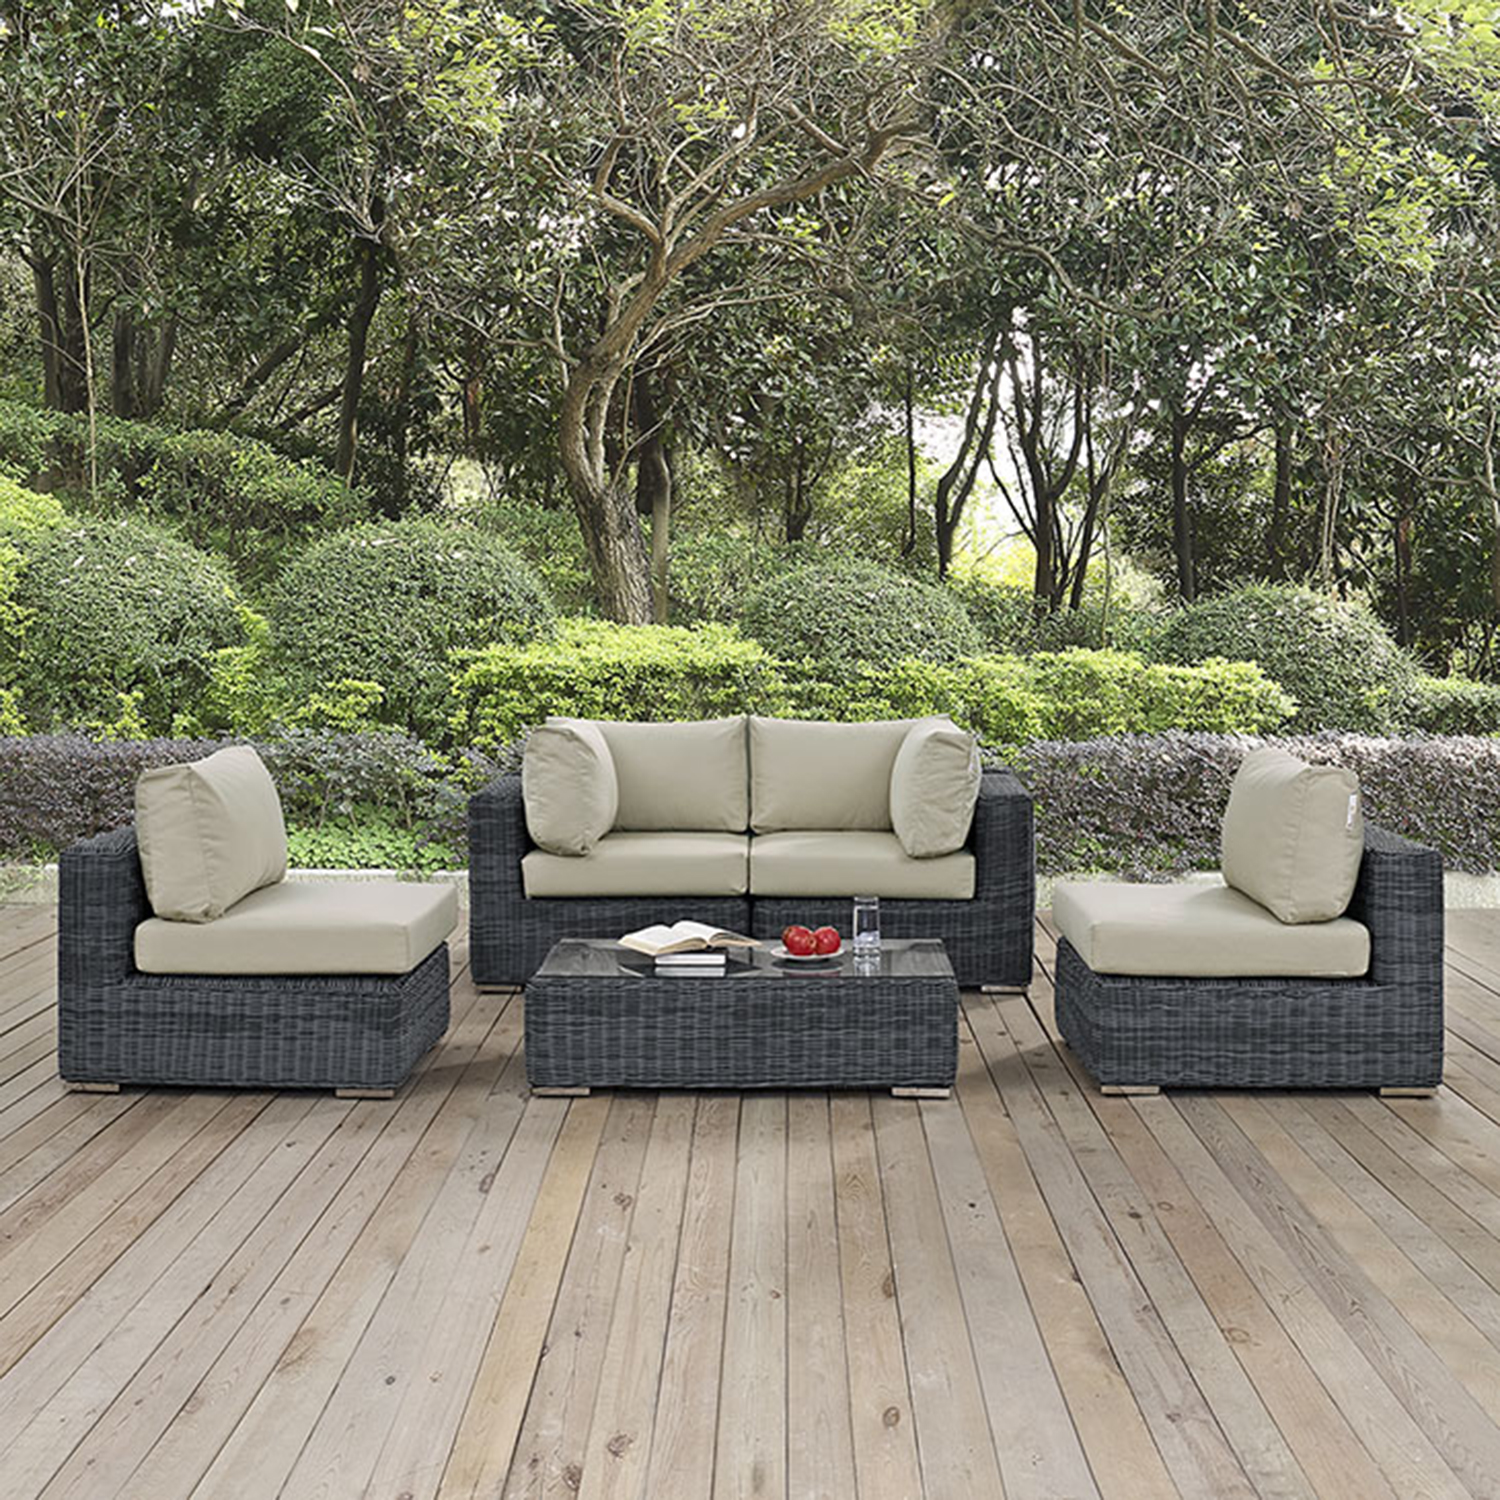 Summon 5 Pieces Patio Sofa Set - Sunbrella Canvas Antique Beige - EEI-1896-GRY-BEI-SET